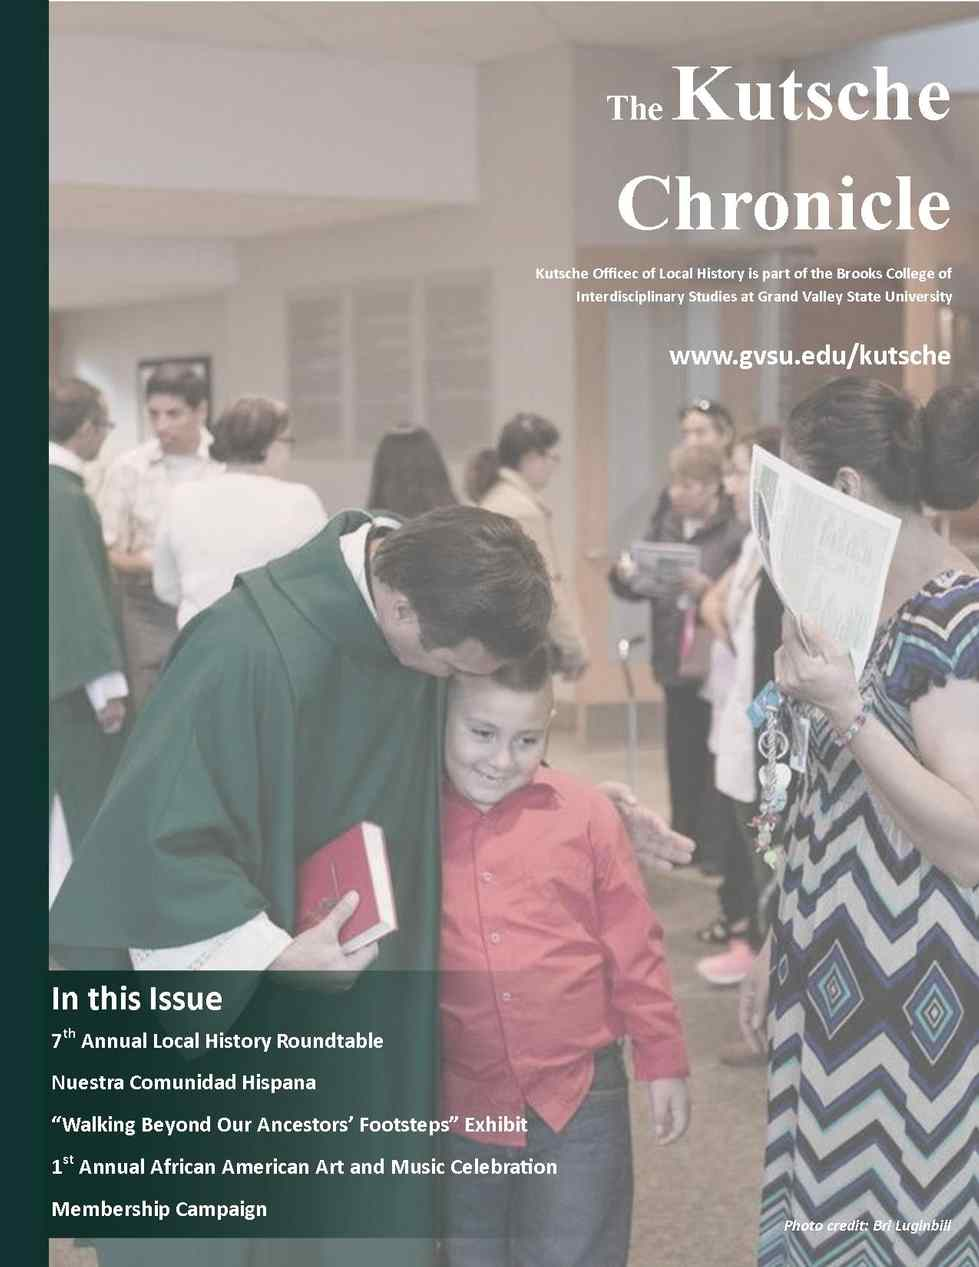 Fall 2015 Kutsche Chronicle